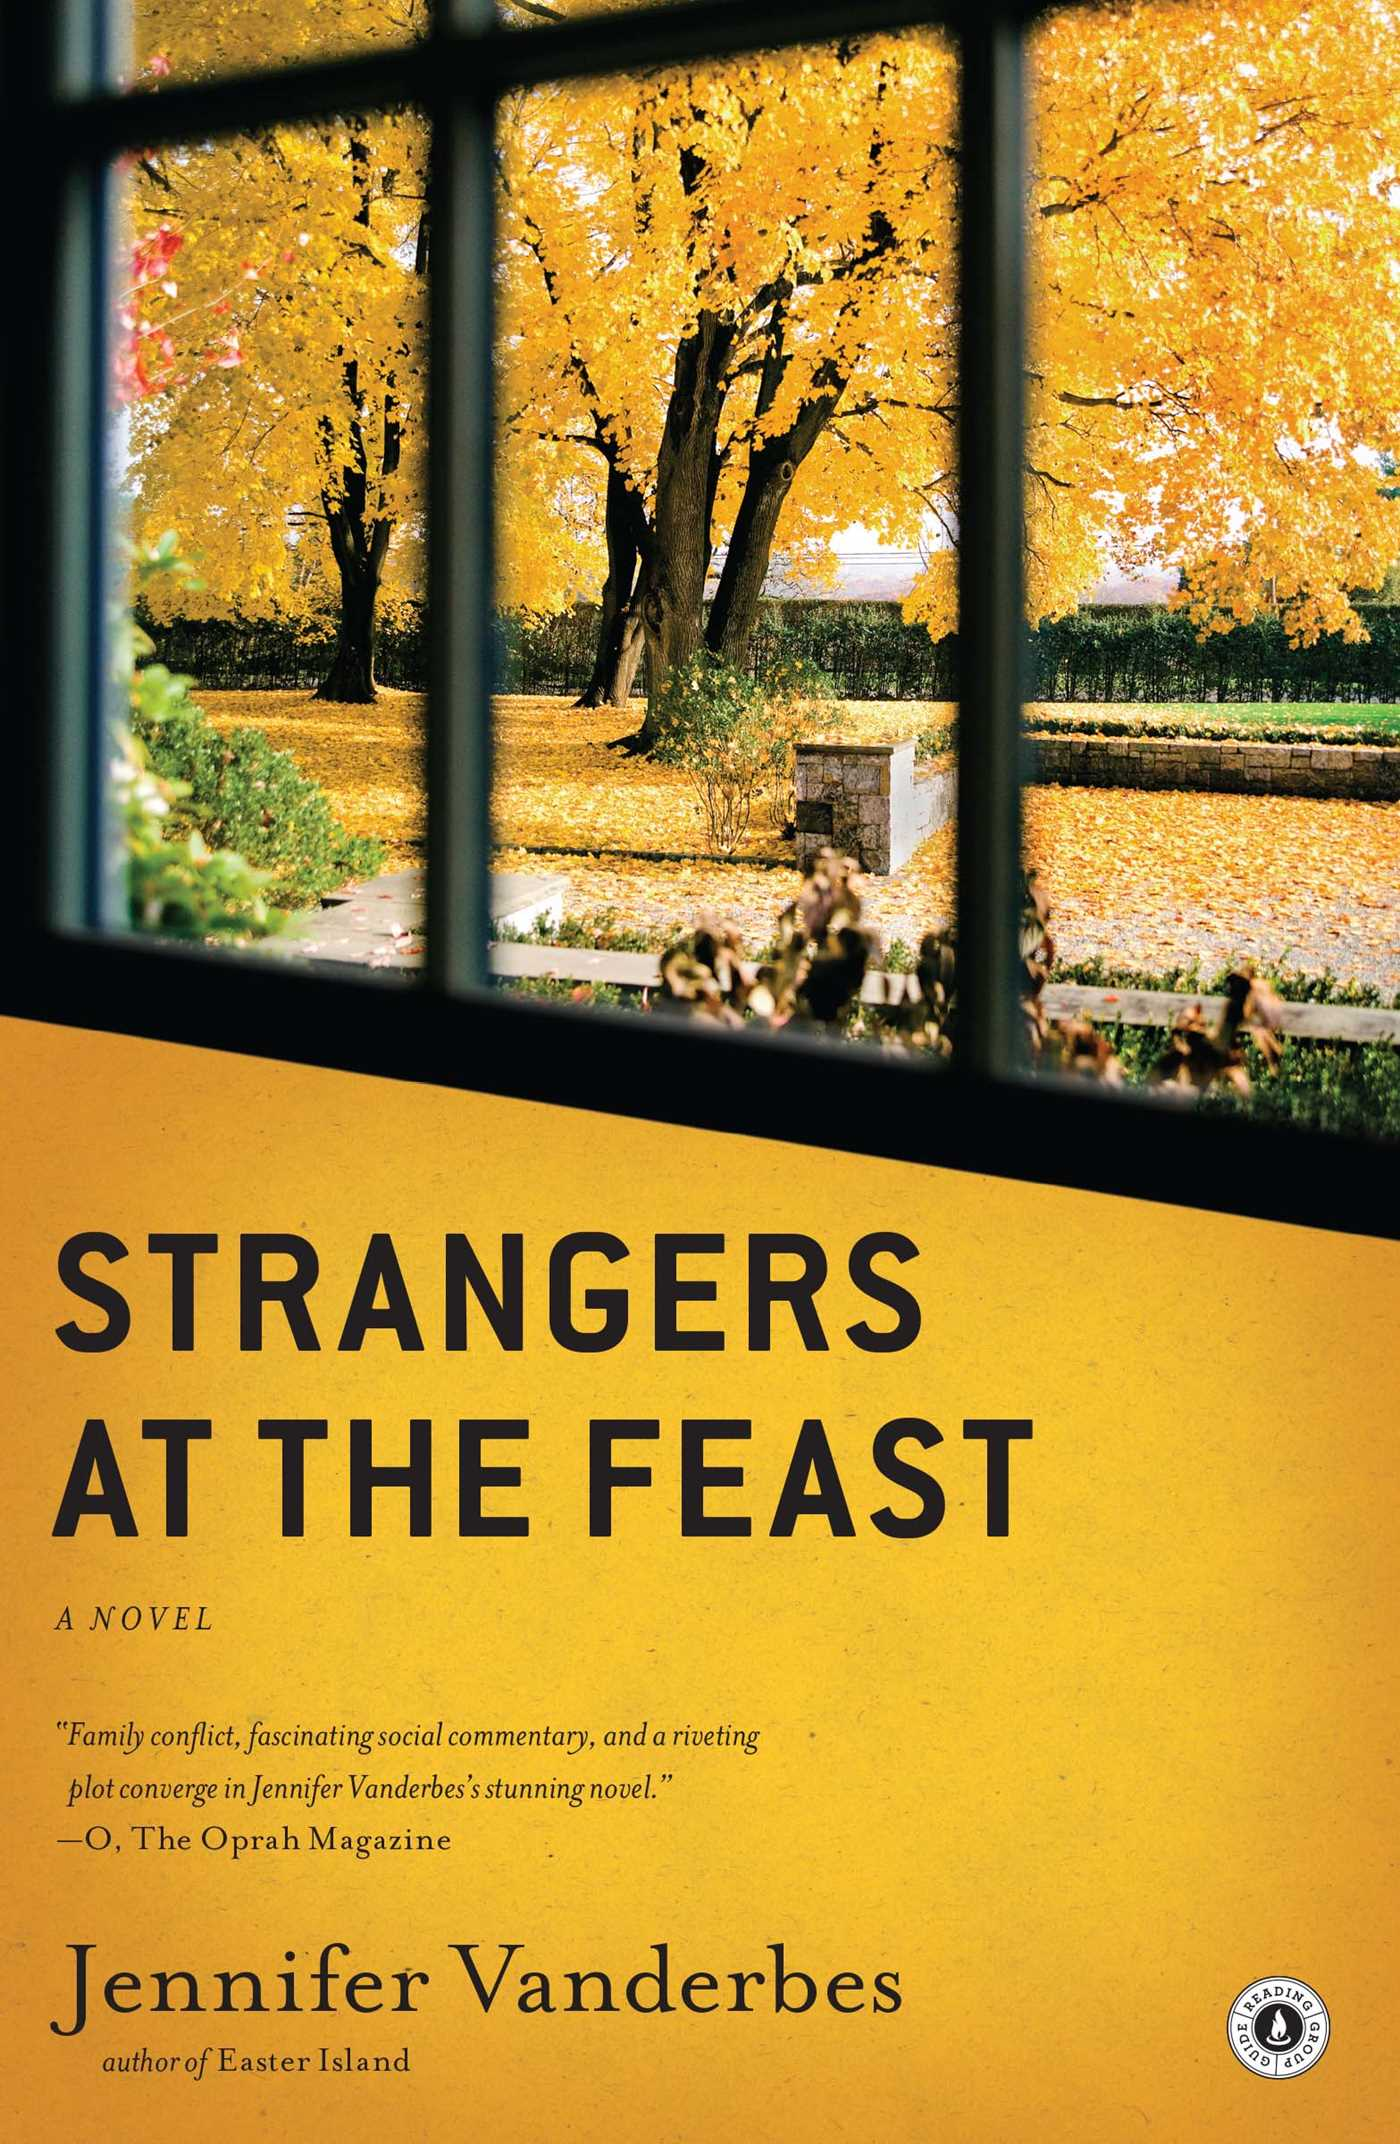 Strangers at the feast 9781439166987 hr